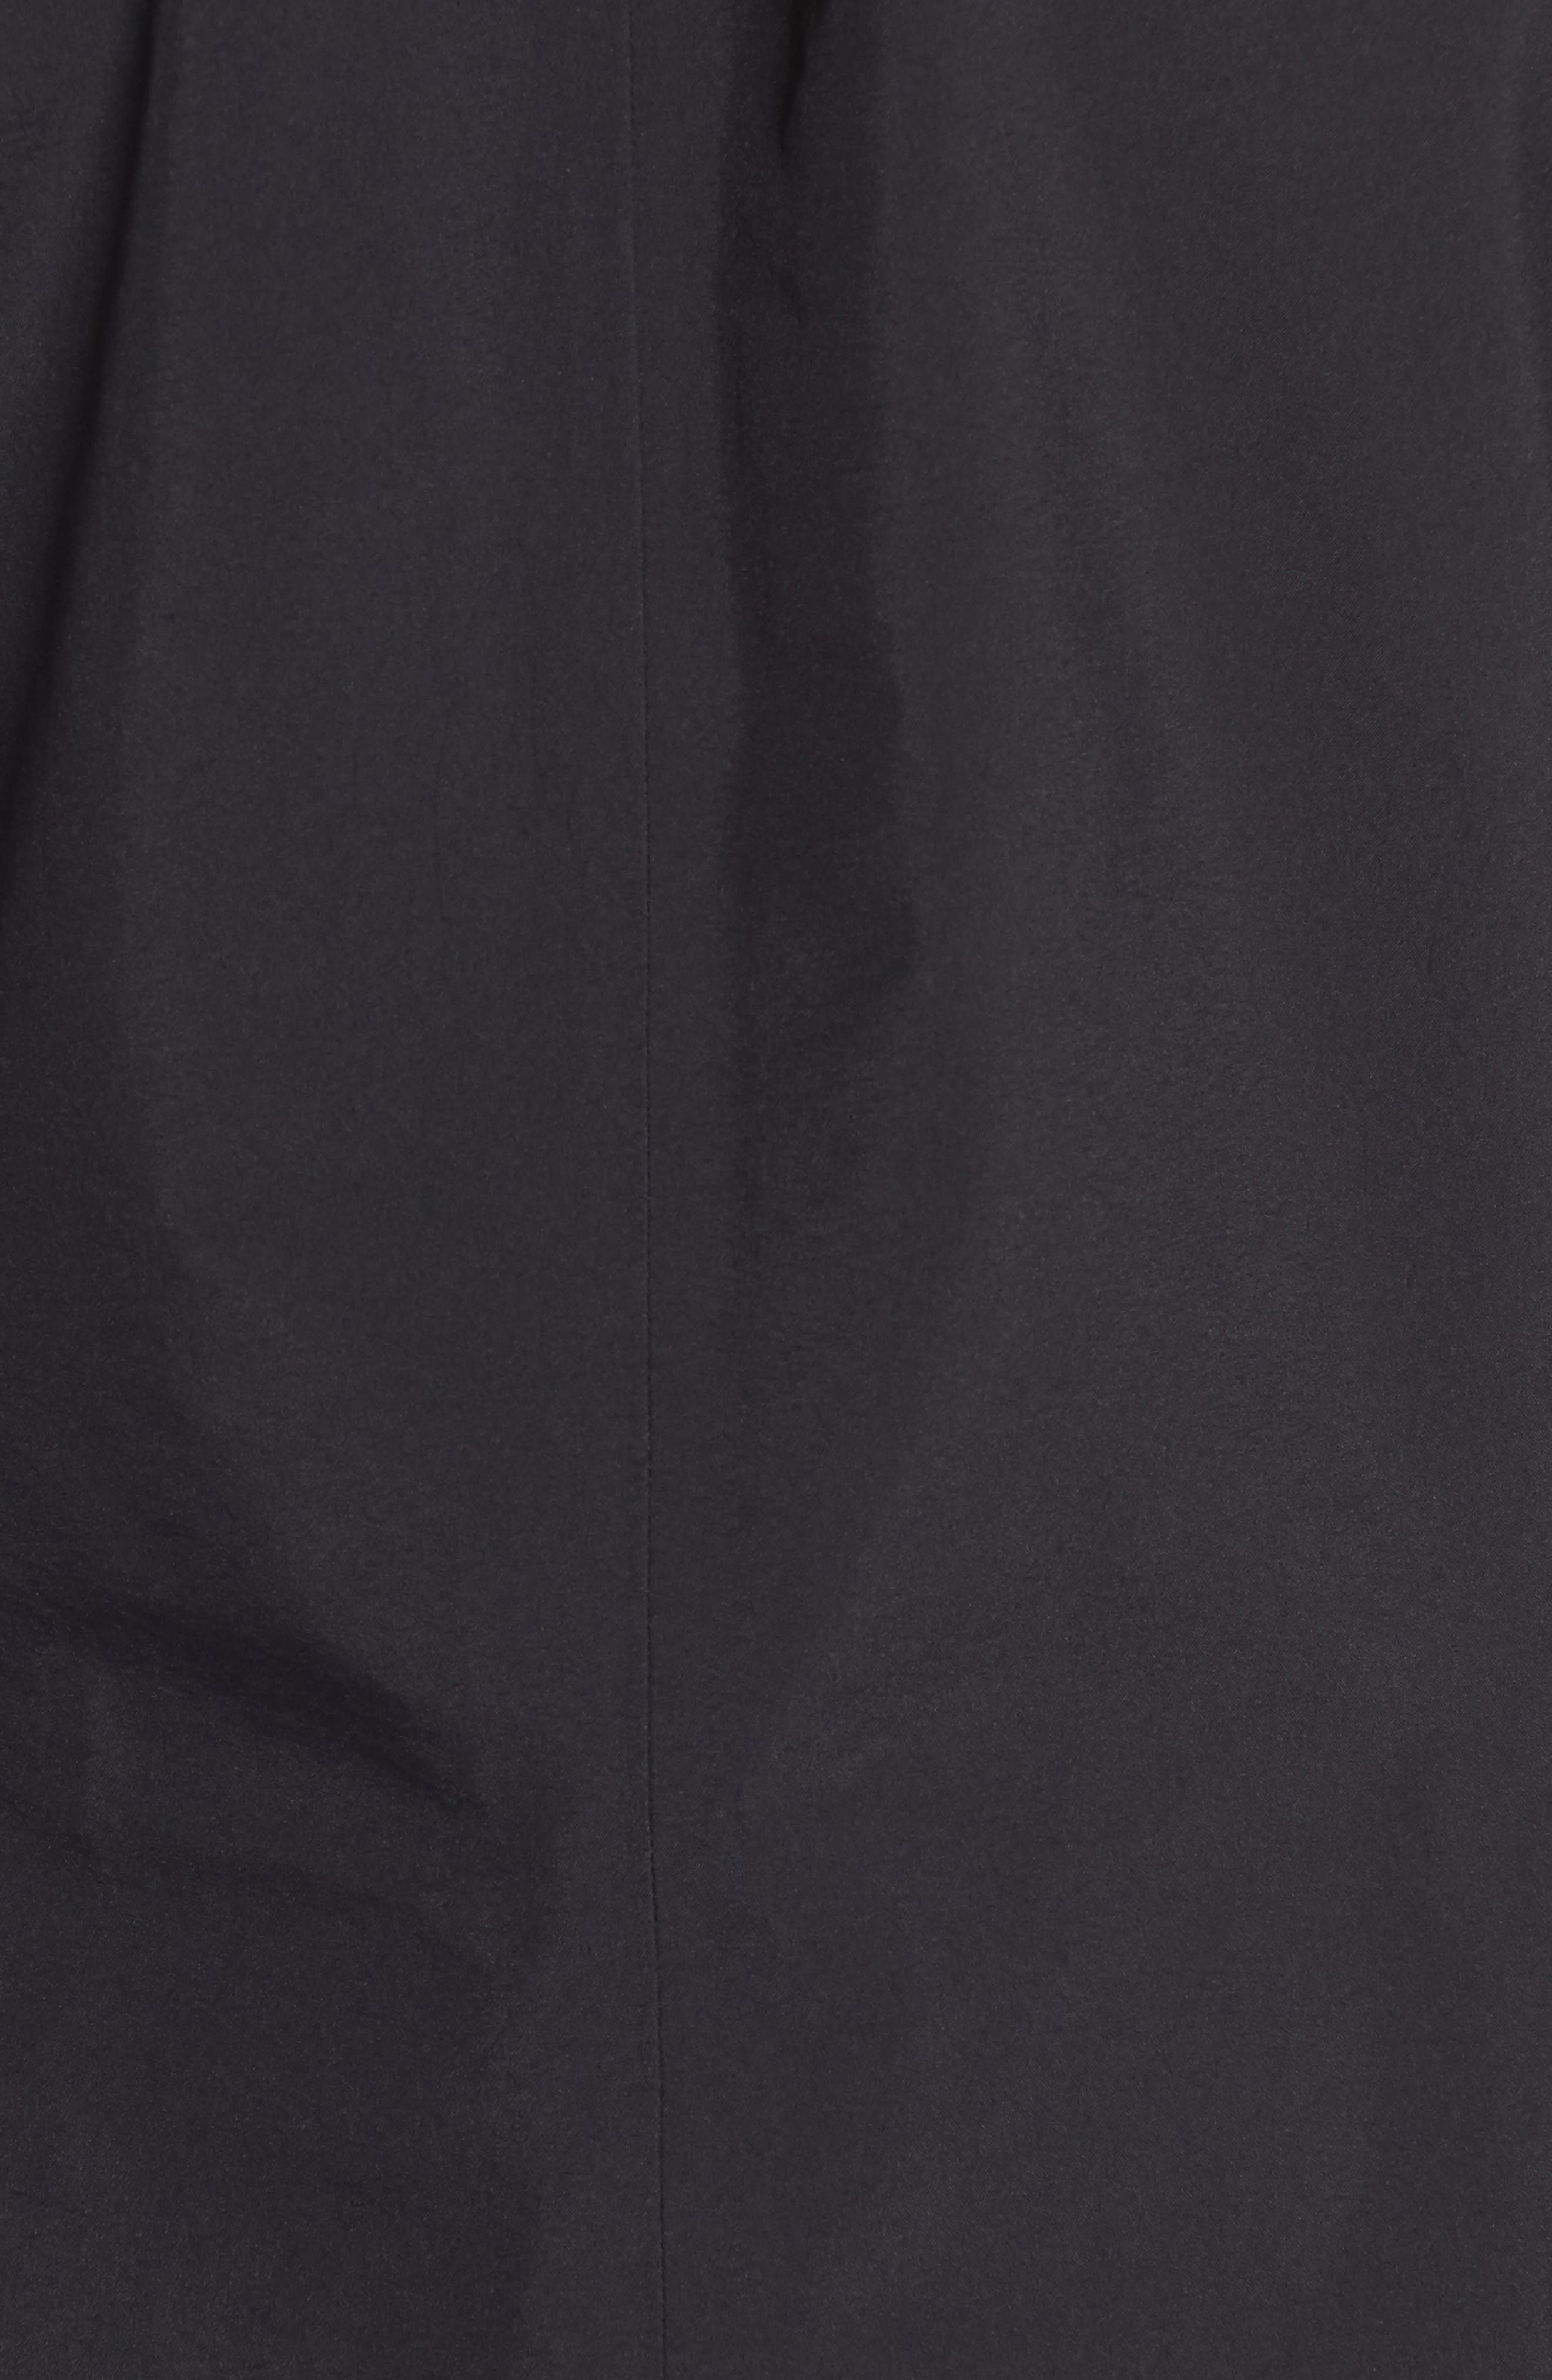 Codetta Waterproof Relaxed Fit Gore-Tex<sup>®</sup> 3L Rain Jacket,                             Alternate thumbnail 6, color,                             Black